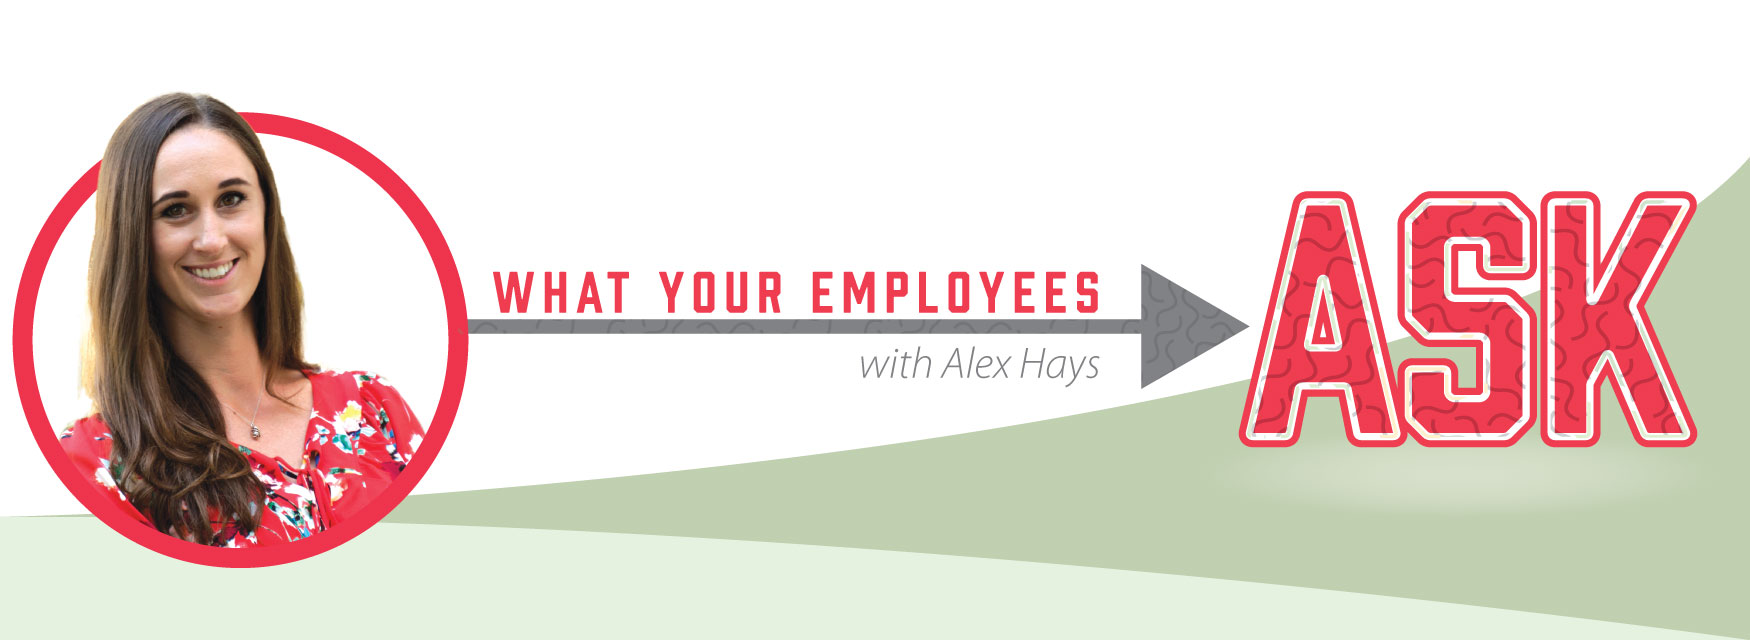 alex-schafle-what-your-employees-ask-byline